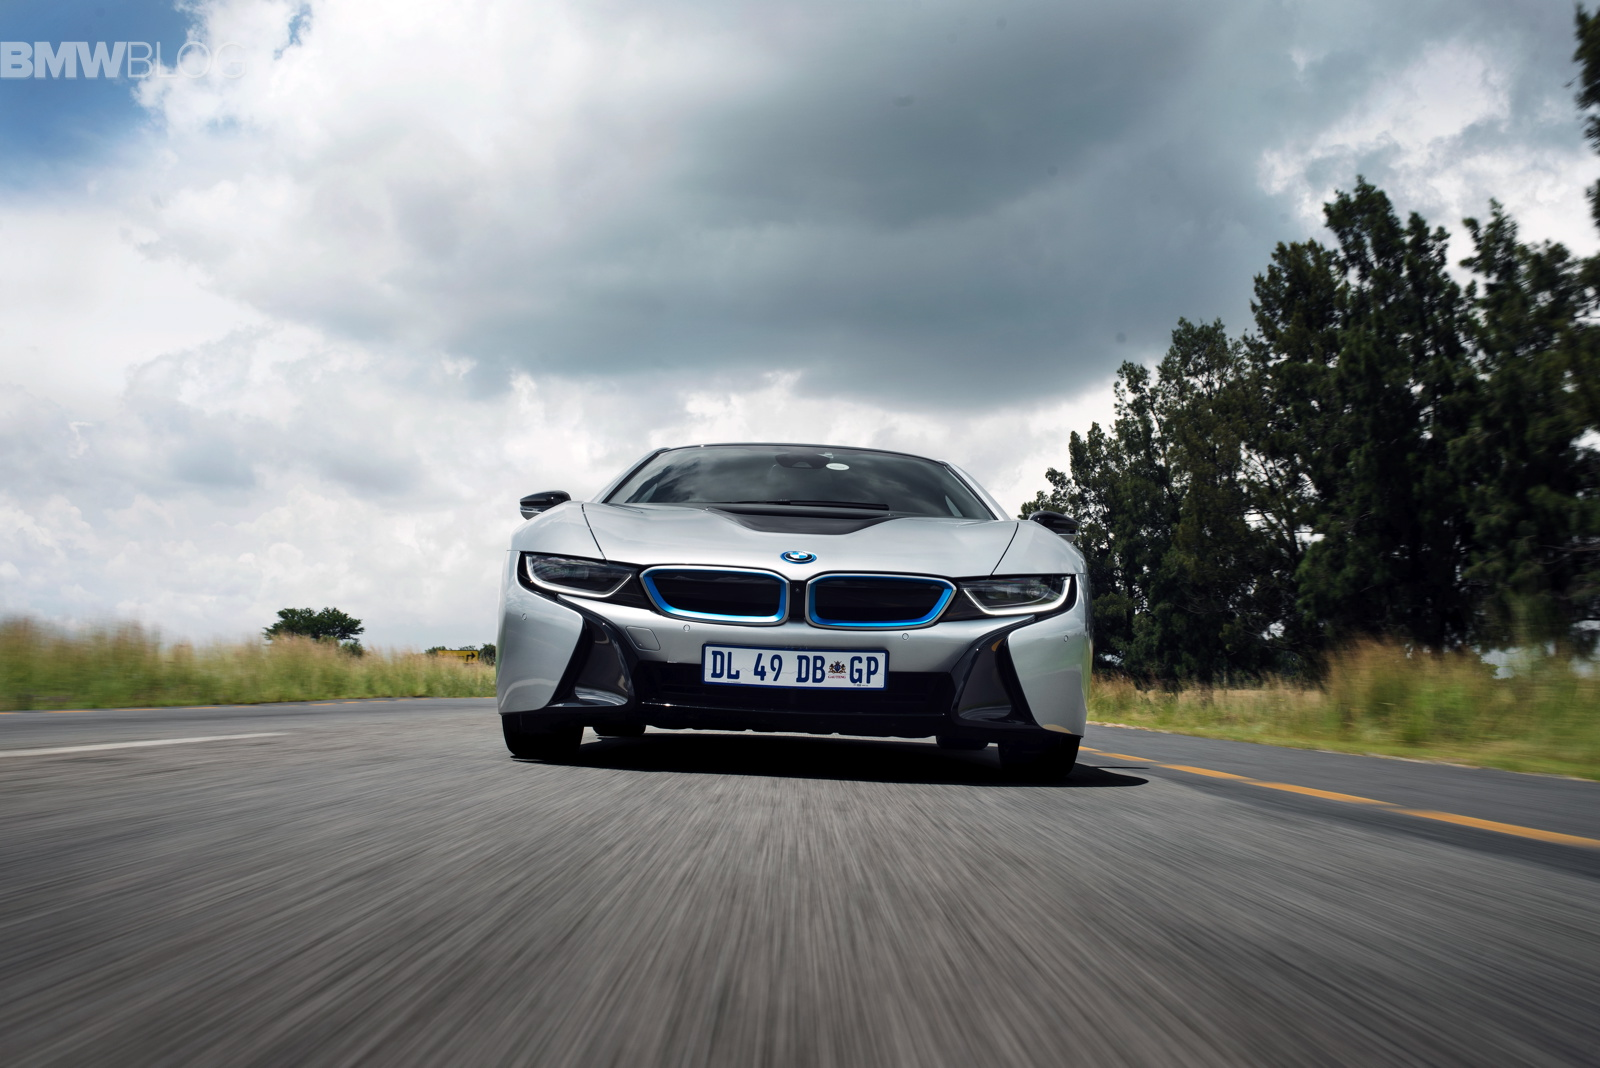 bmw i8 images south africa 12